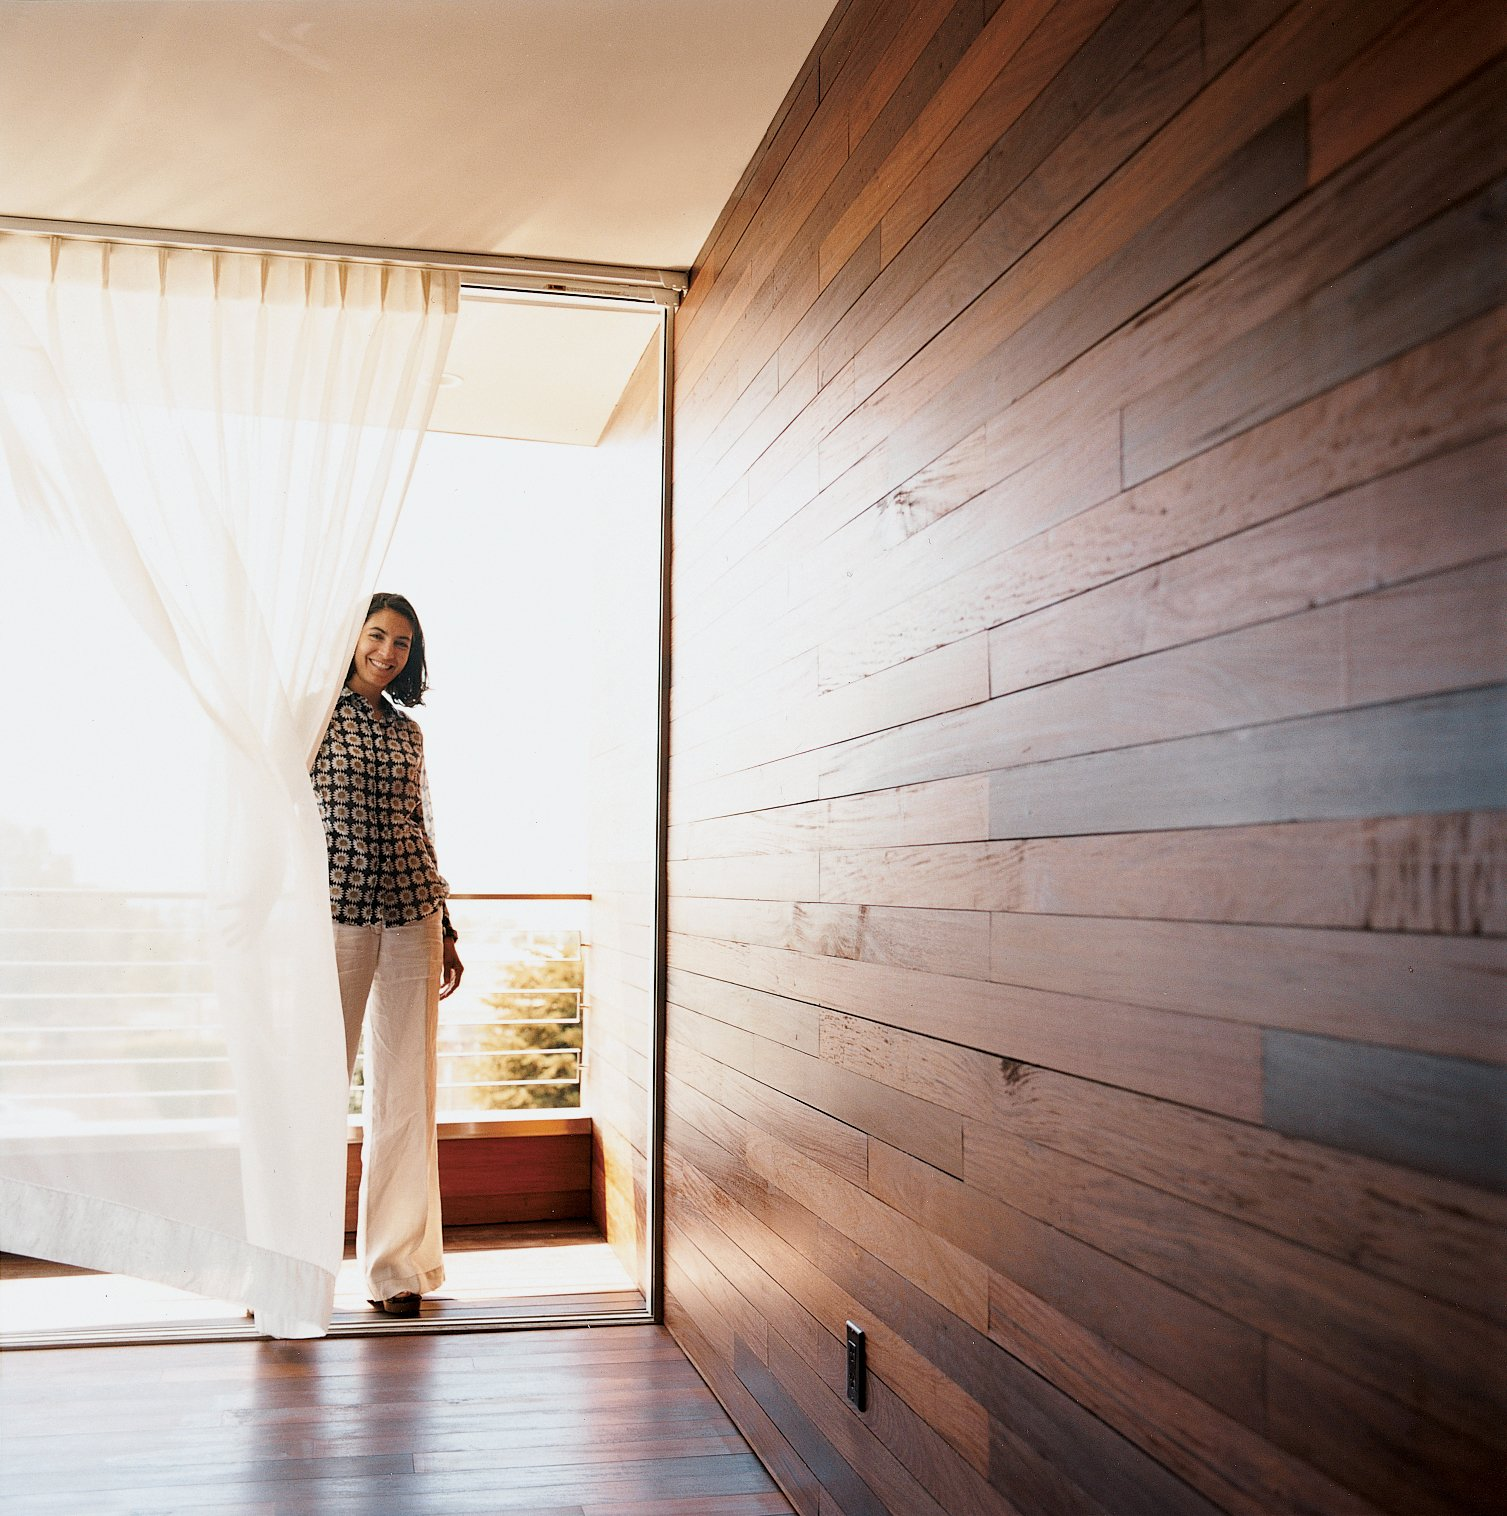 Doors and Exterior The Mariscals' bedroom opens out onto a small triangular patio. The exterior's ipe cladding also makes up the walls and floor of the master bedroom, further inviting the outside in.  Photo 7 of 7 in Sebastian Mariscal's Wood Architecture from Double the Pleasure